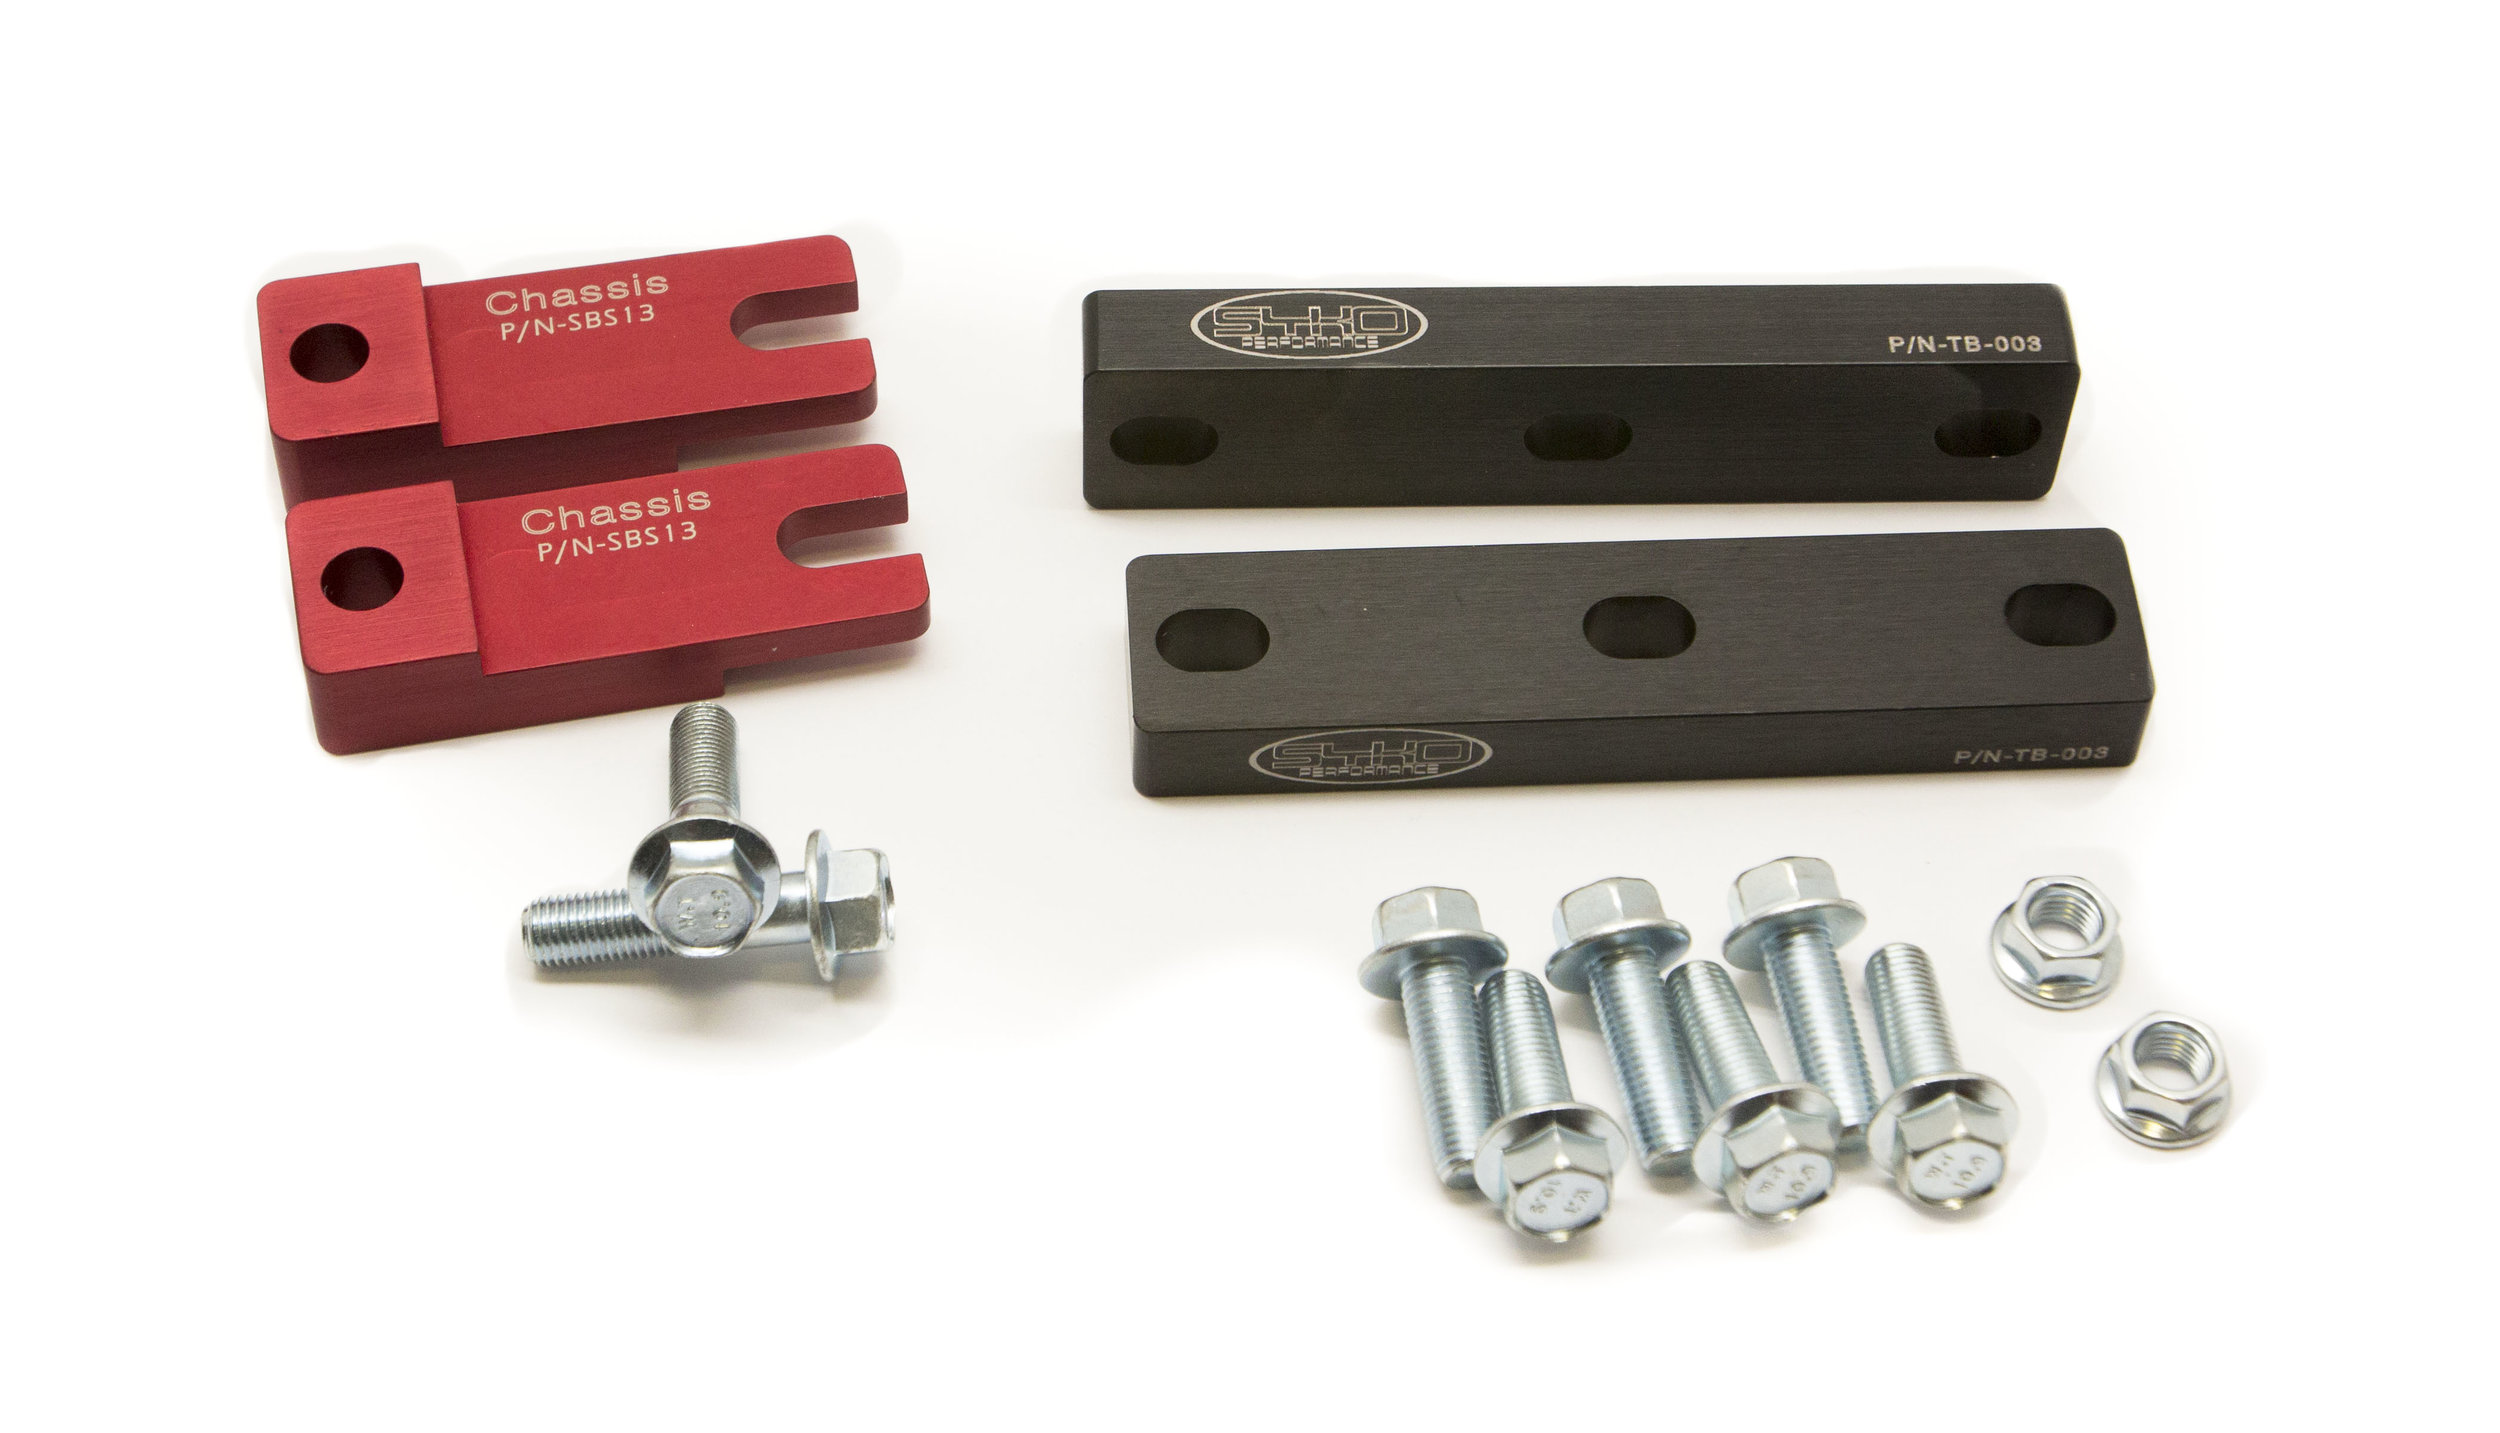 CNC T-6 Al sway bar spacers and heavy duty transmission relocation brackets